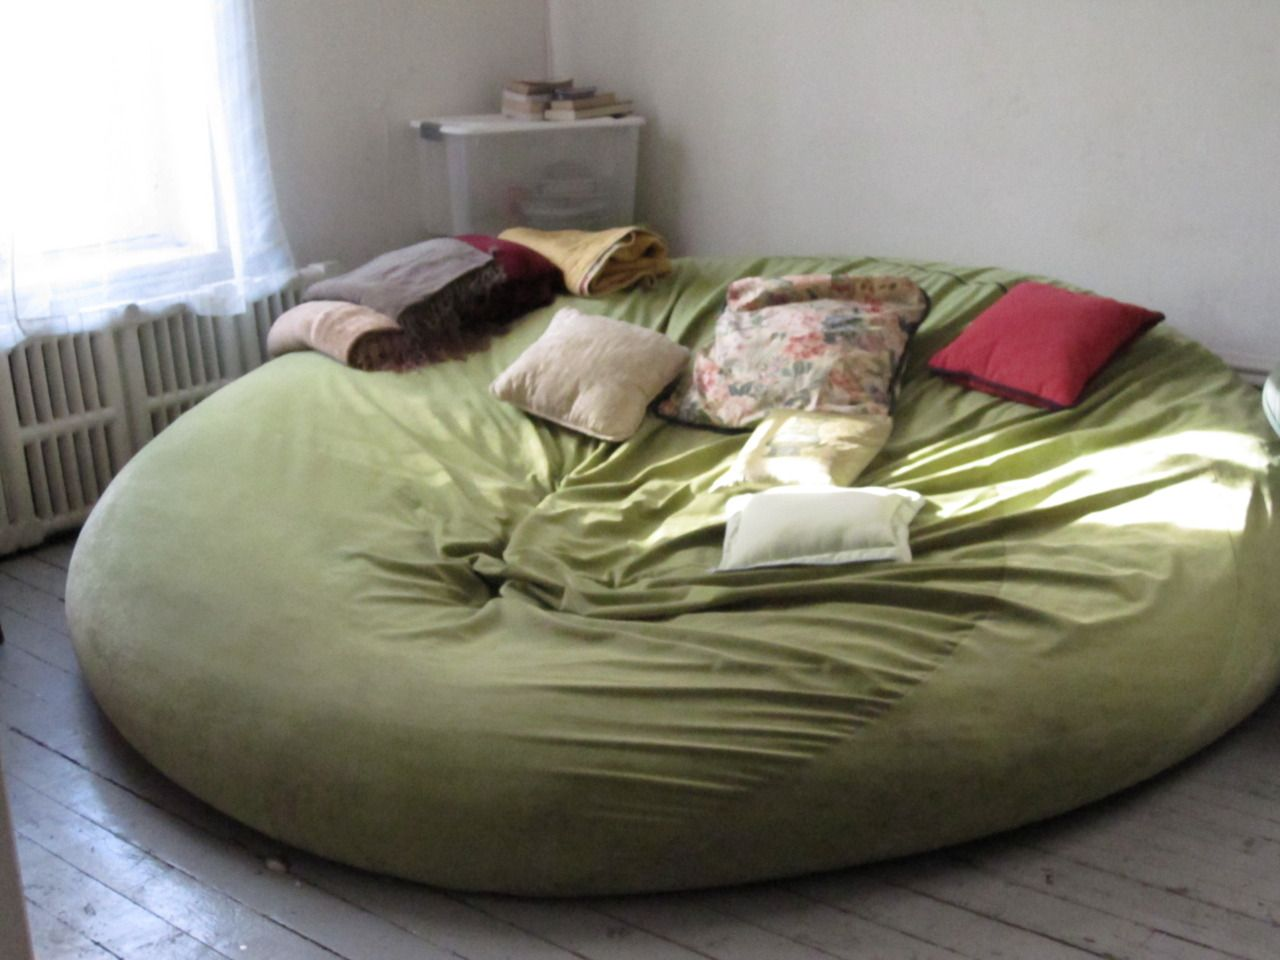 Funny Bean Bag Chairs | Biggest Bean Bag Chair Bed Iu0027ve Ever Seen In My  Life. I Want This!